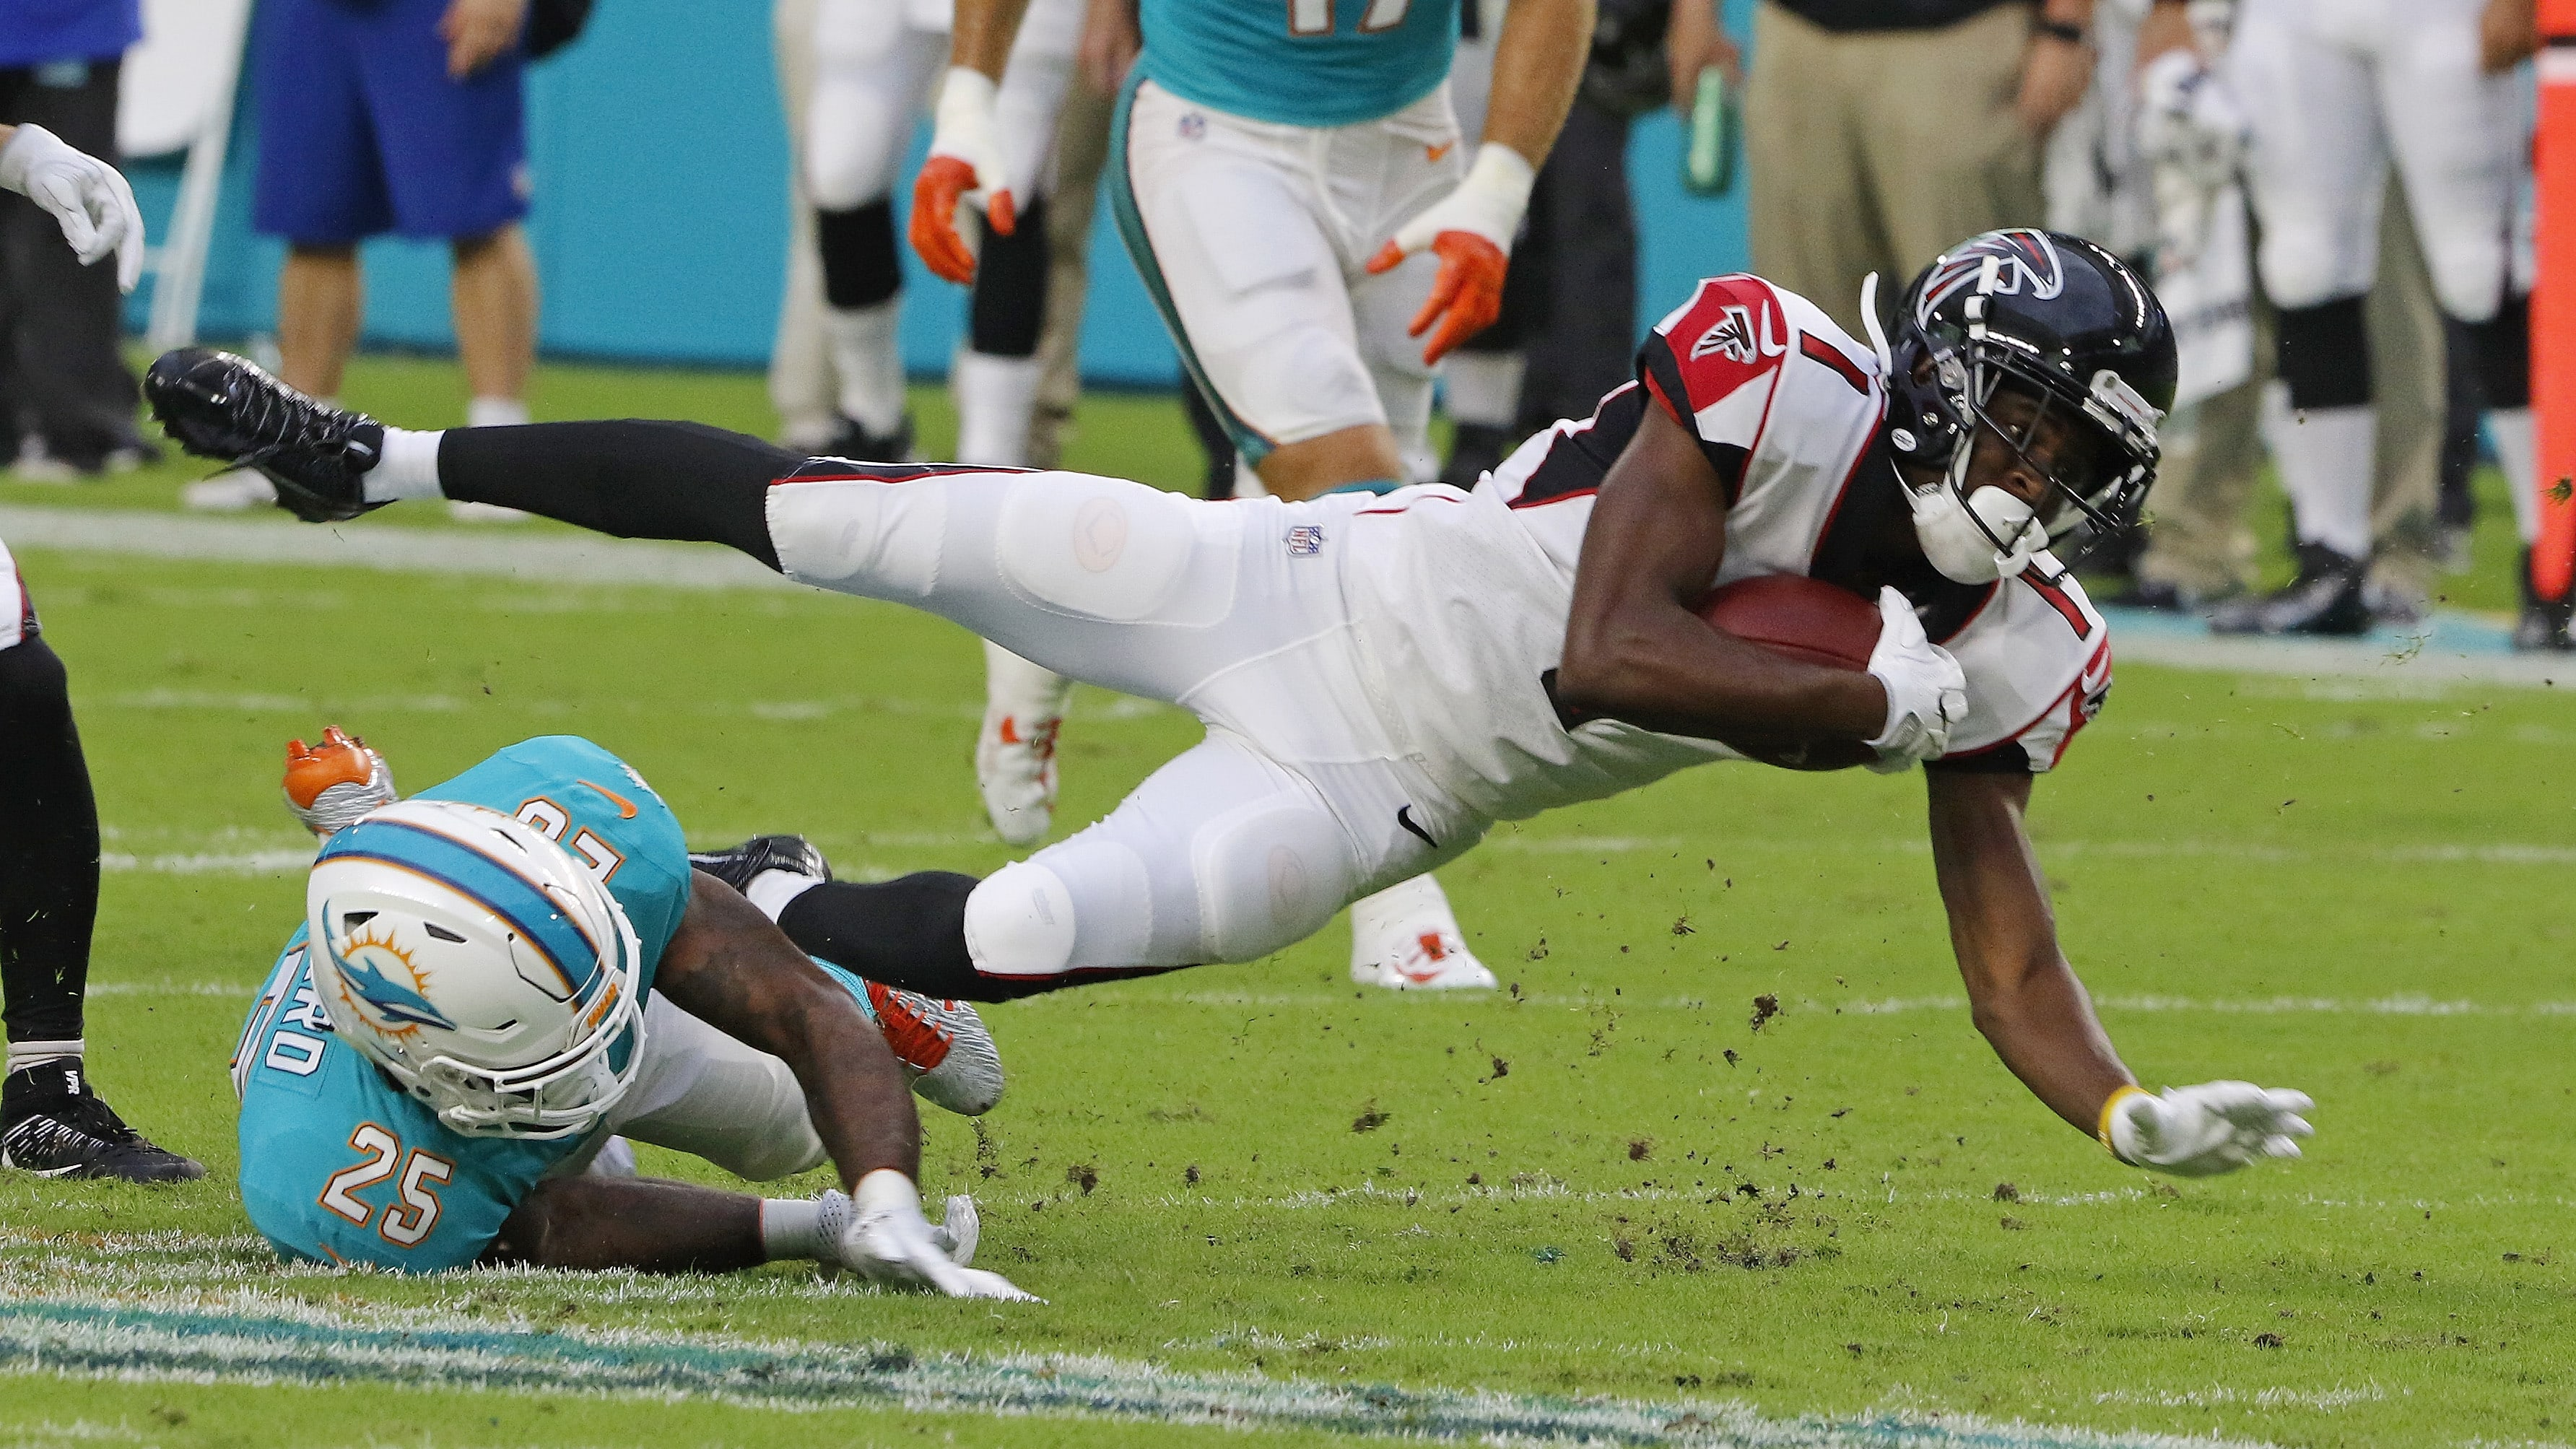 MIAMI GARDENS, FL - AUGUST 10:  Reggie Davis #1 of the Atlanta Falcons goes the turf after being hit by Xavien Howard #25 of the Miami Dolphins during their preseason game at Hard Rock Stadium on August 10, 2017 in Miami Gardens, Florida.  (Photo by Joe Skipper/Getty Images)